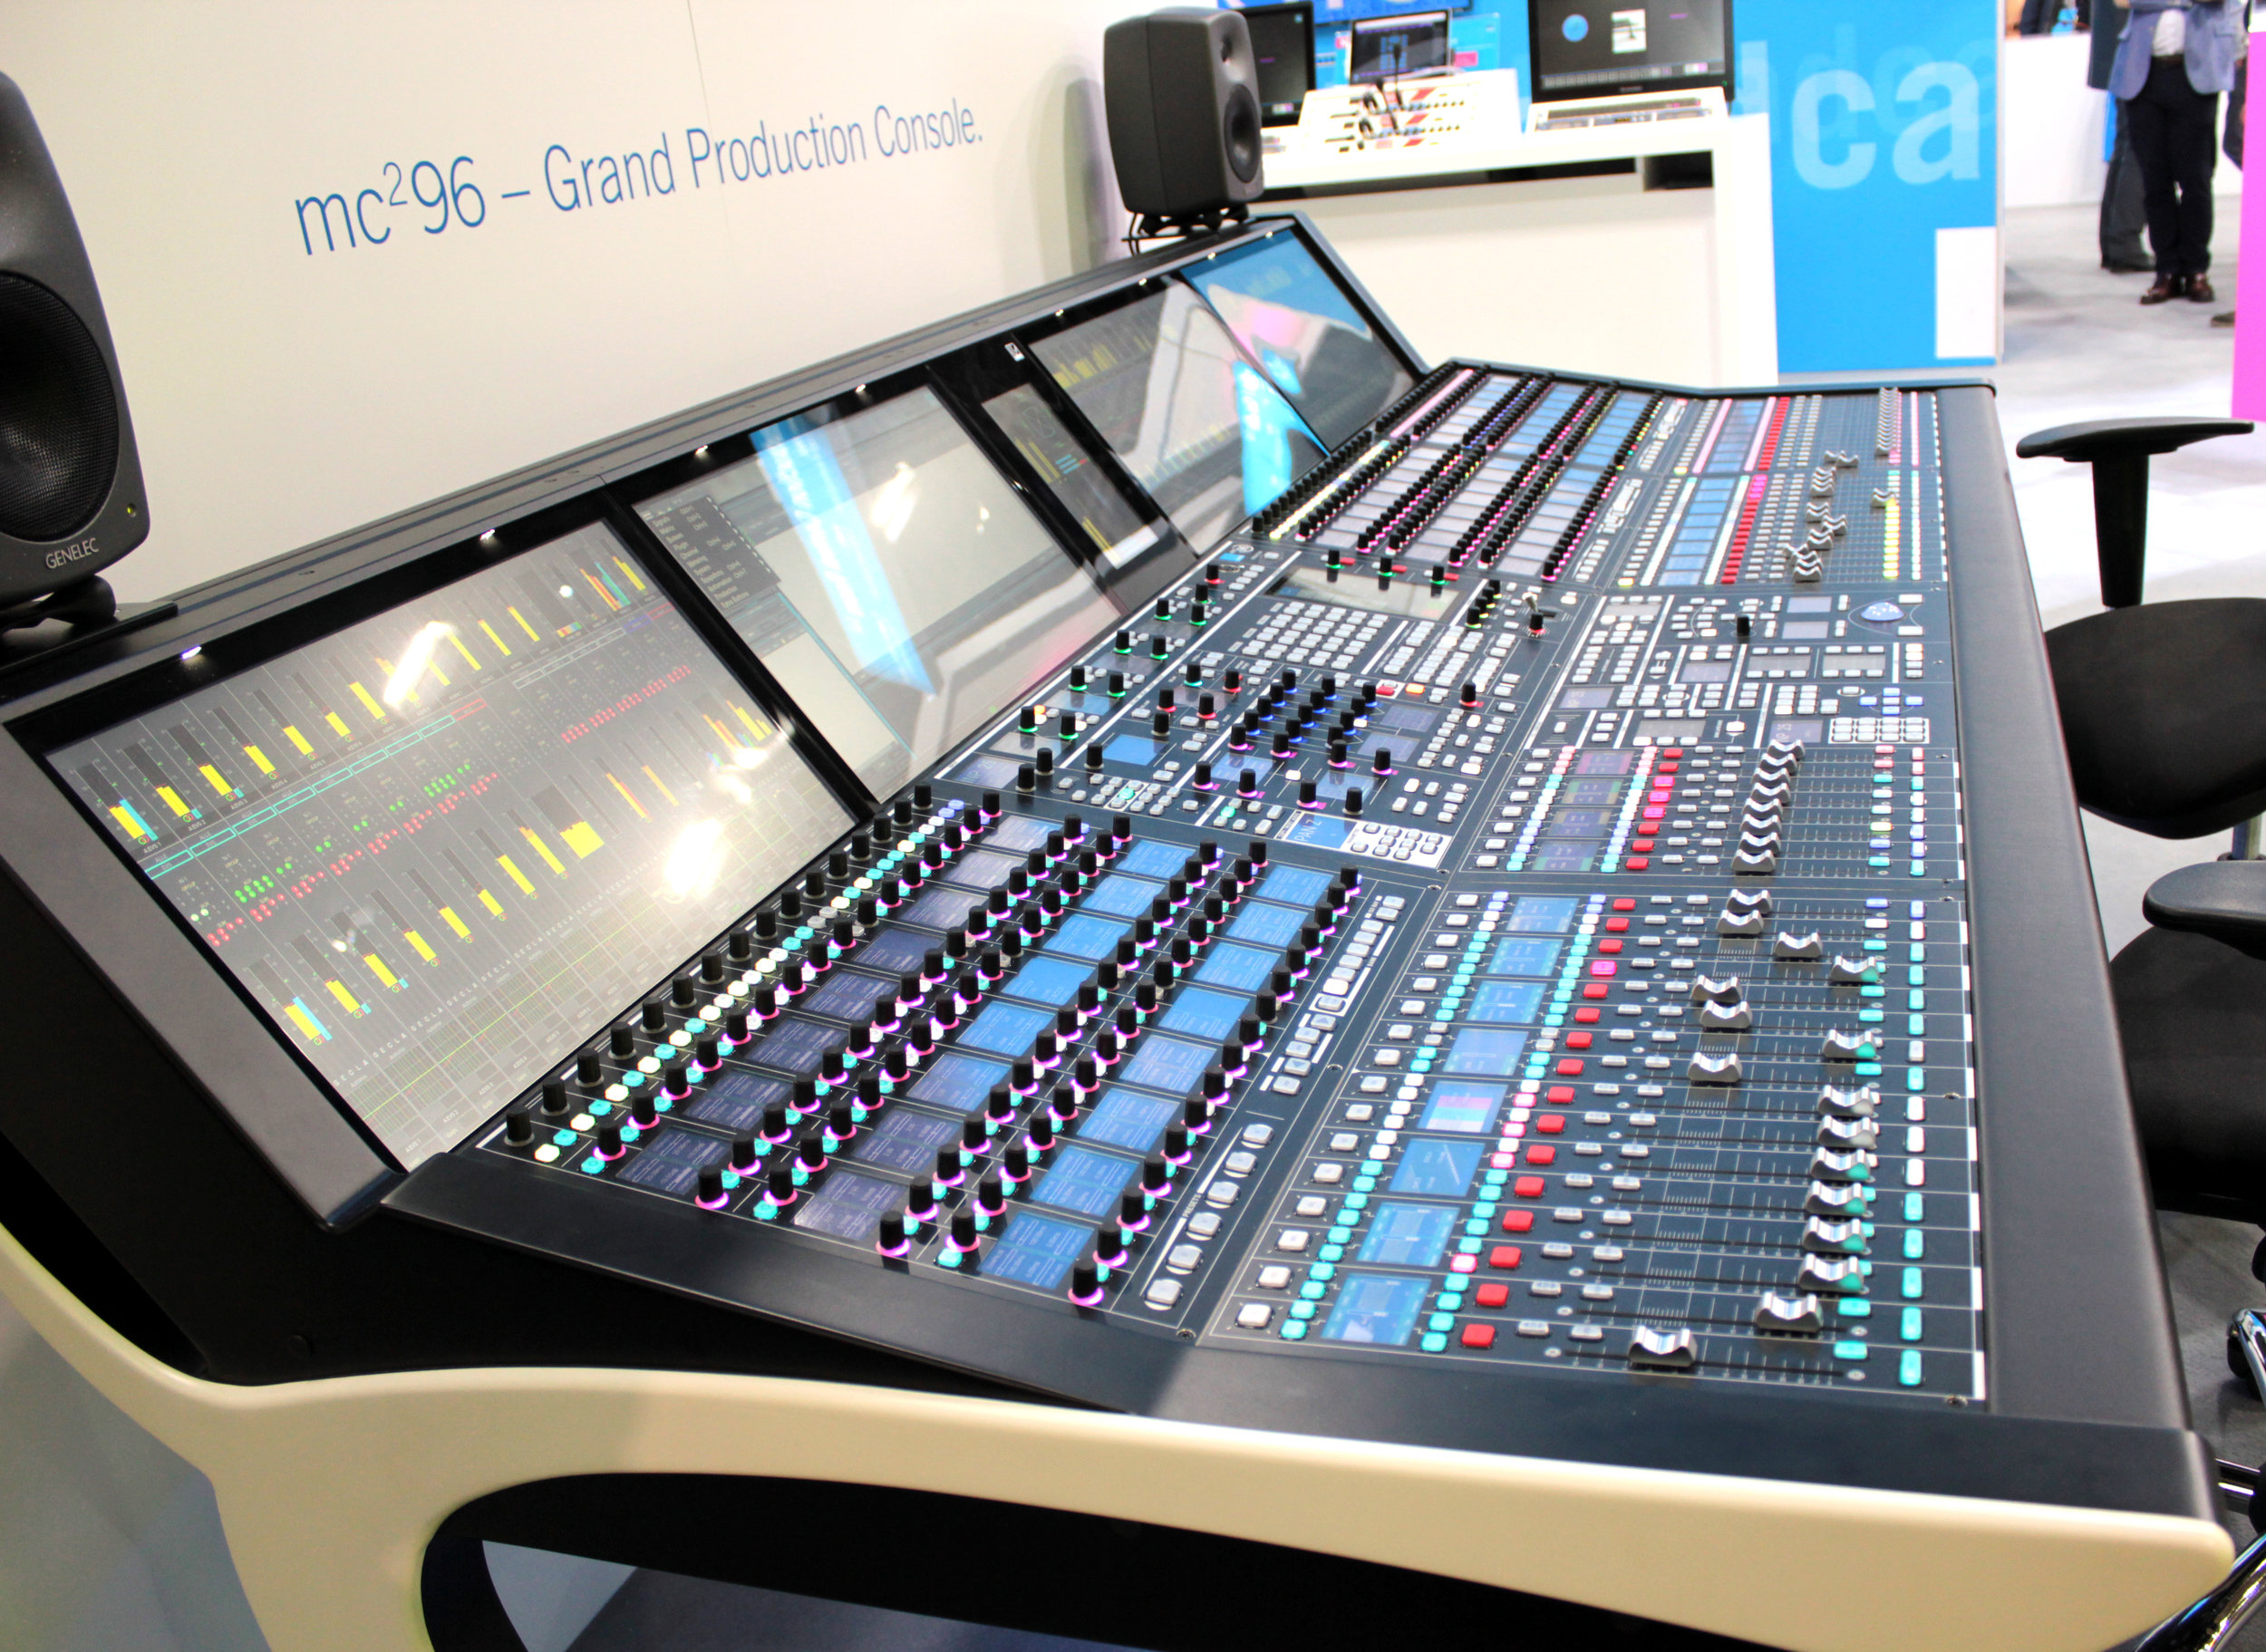 Lawomc²96 Grand Production Console